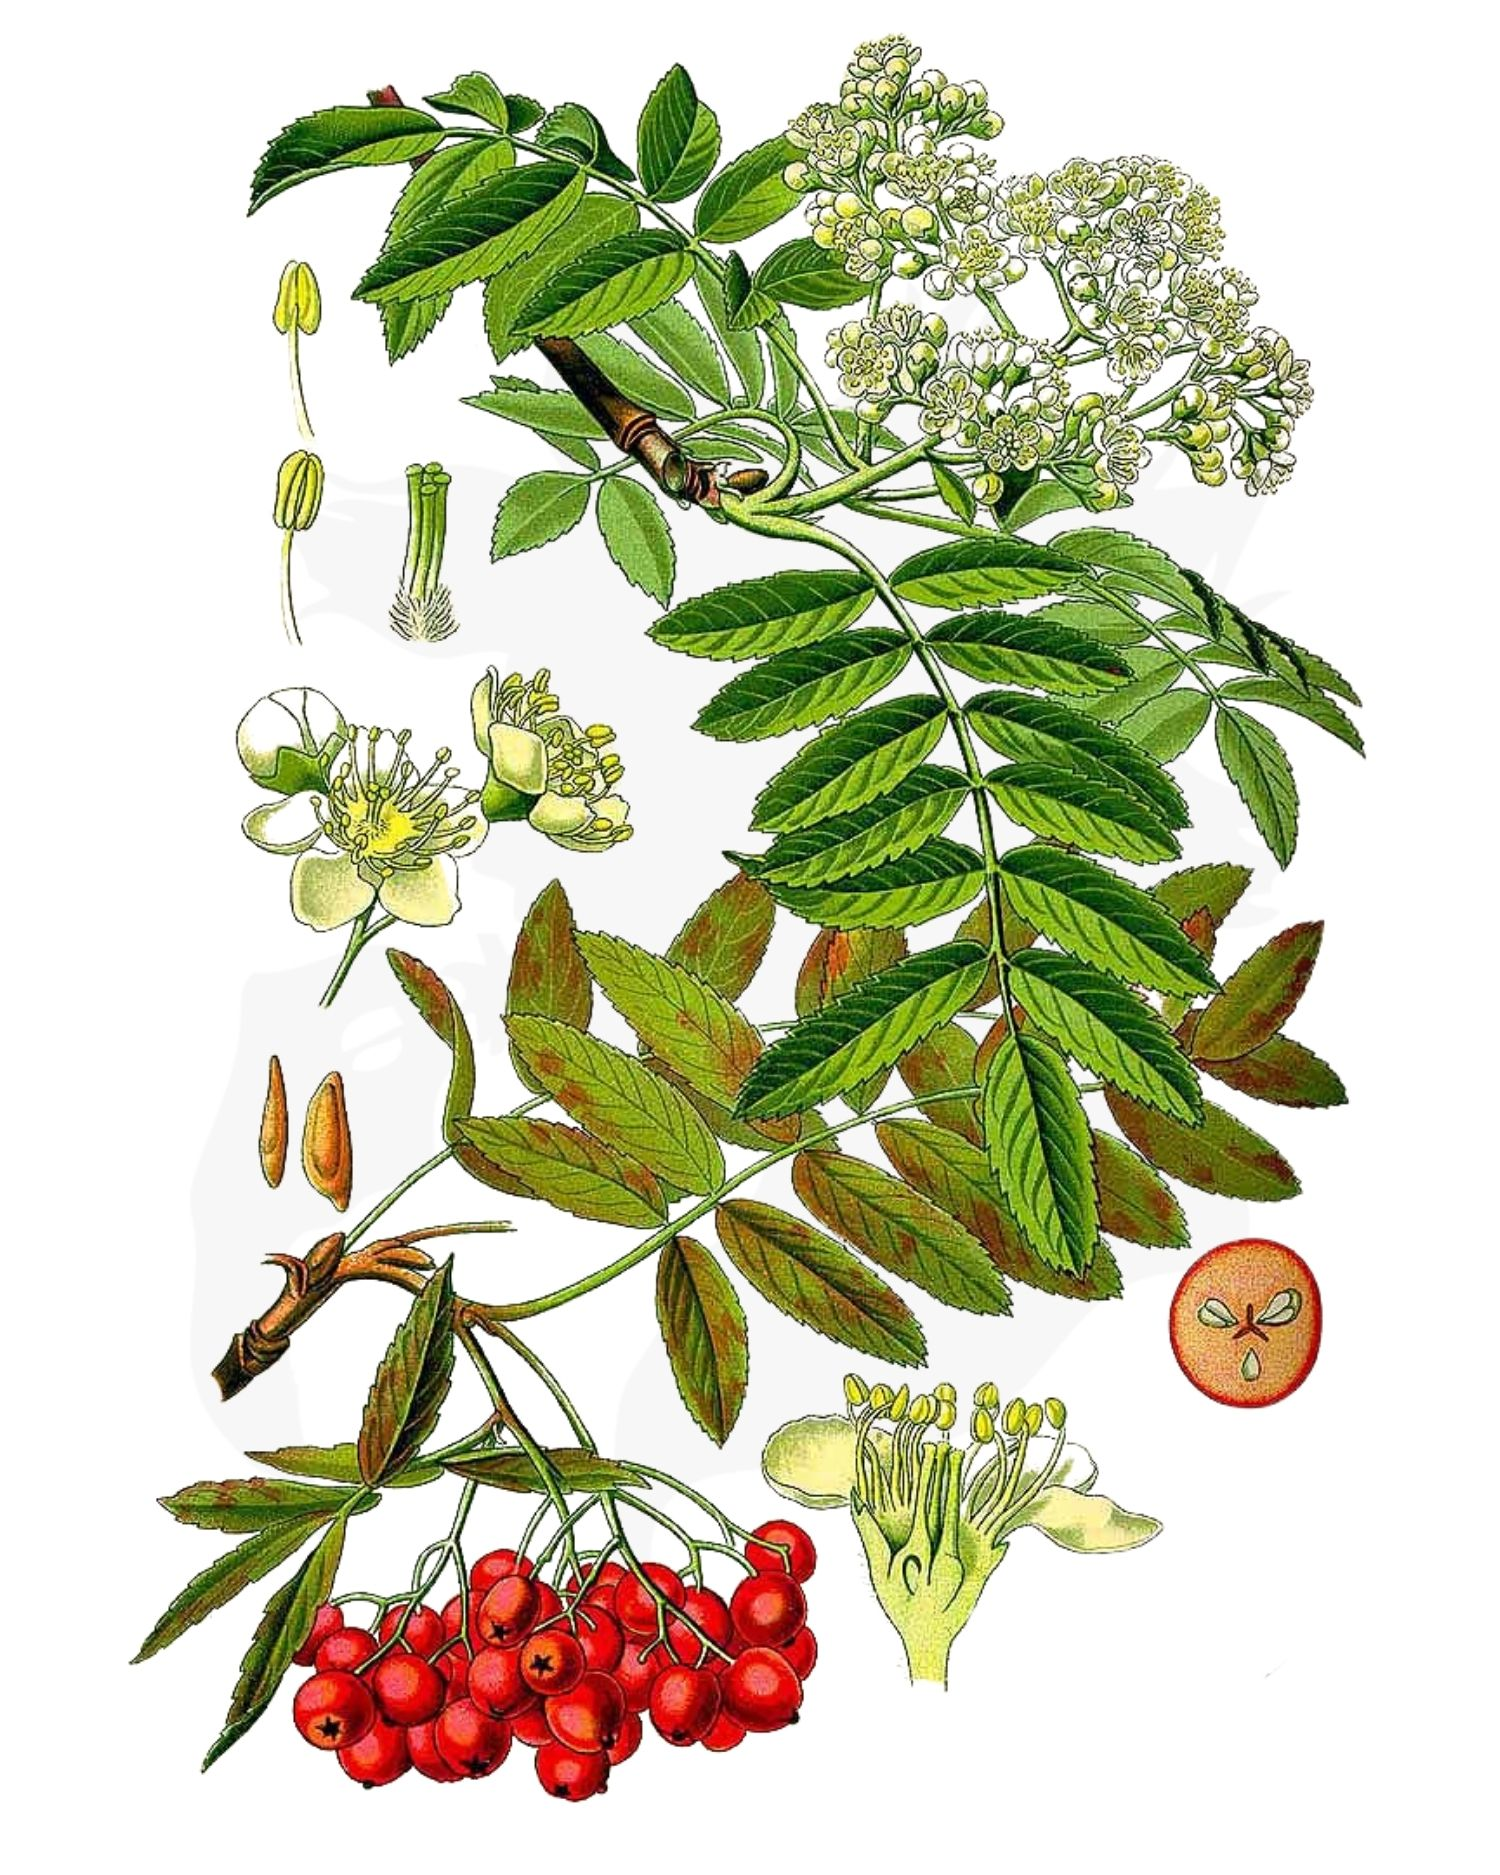 Rowan or Mountain Ash - A Foraging Guide to Its Food, Medicine and Other Uses